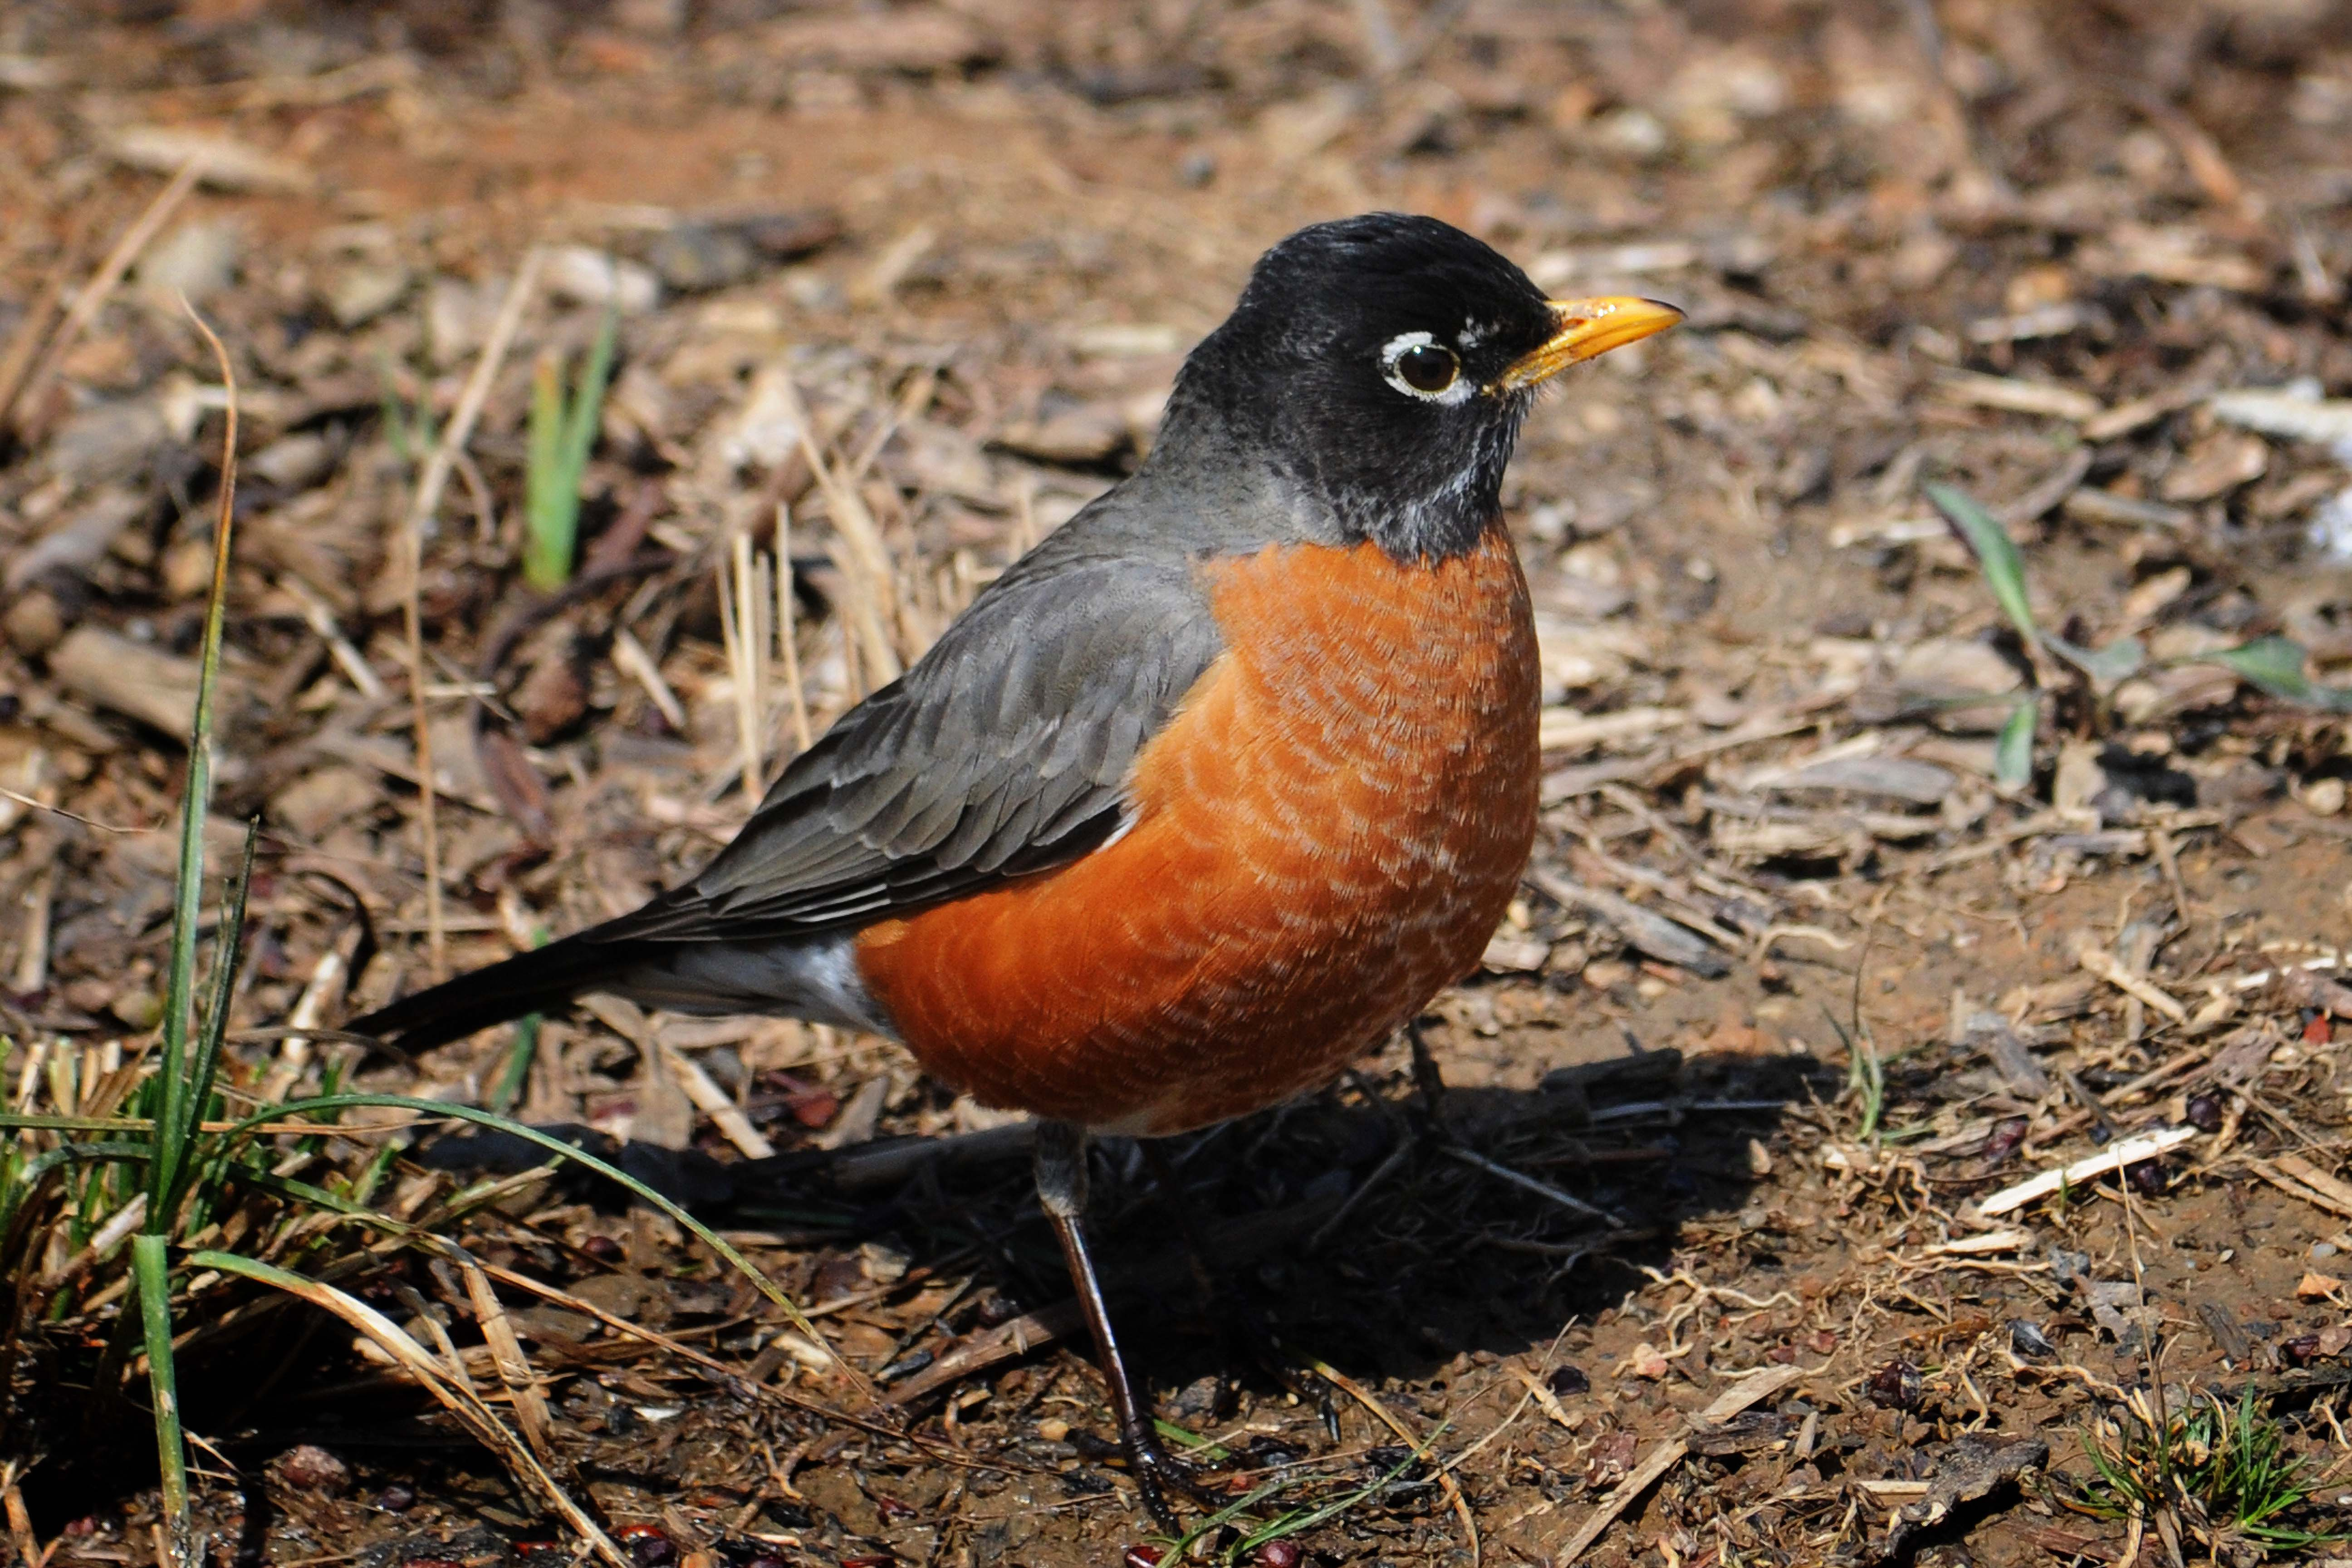 - For The Birds: Can Birds Change Their Bill Color?